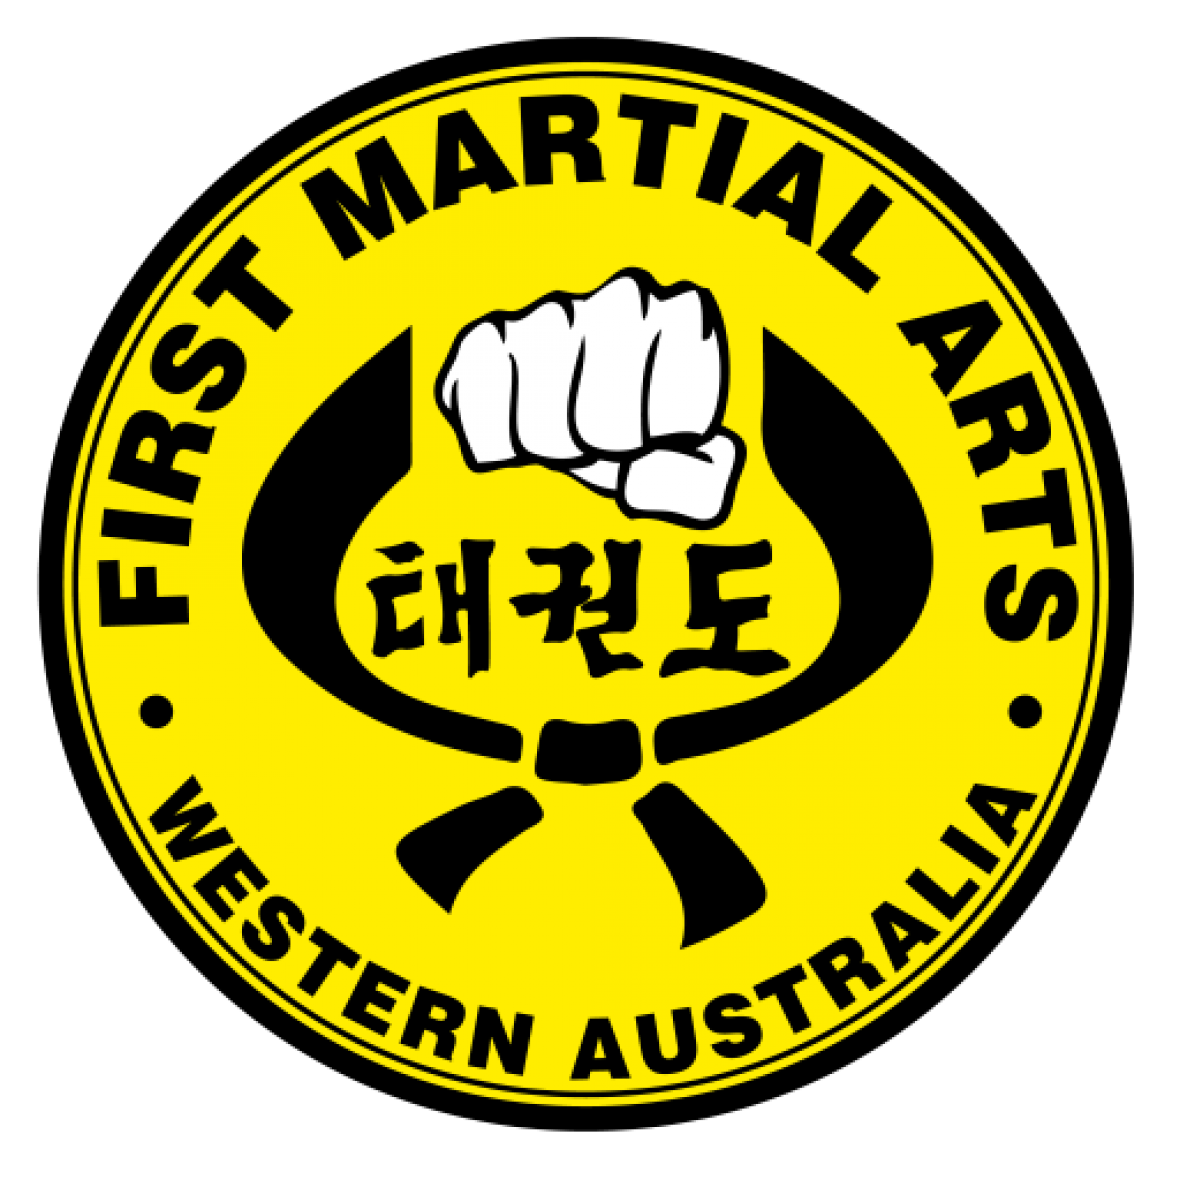 First Martial Arts Perth Western Australia